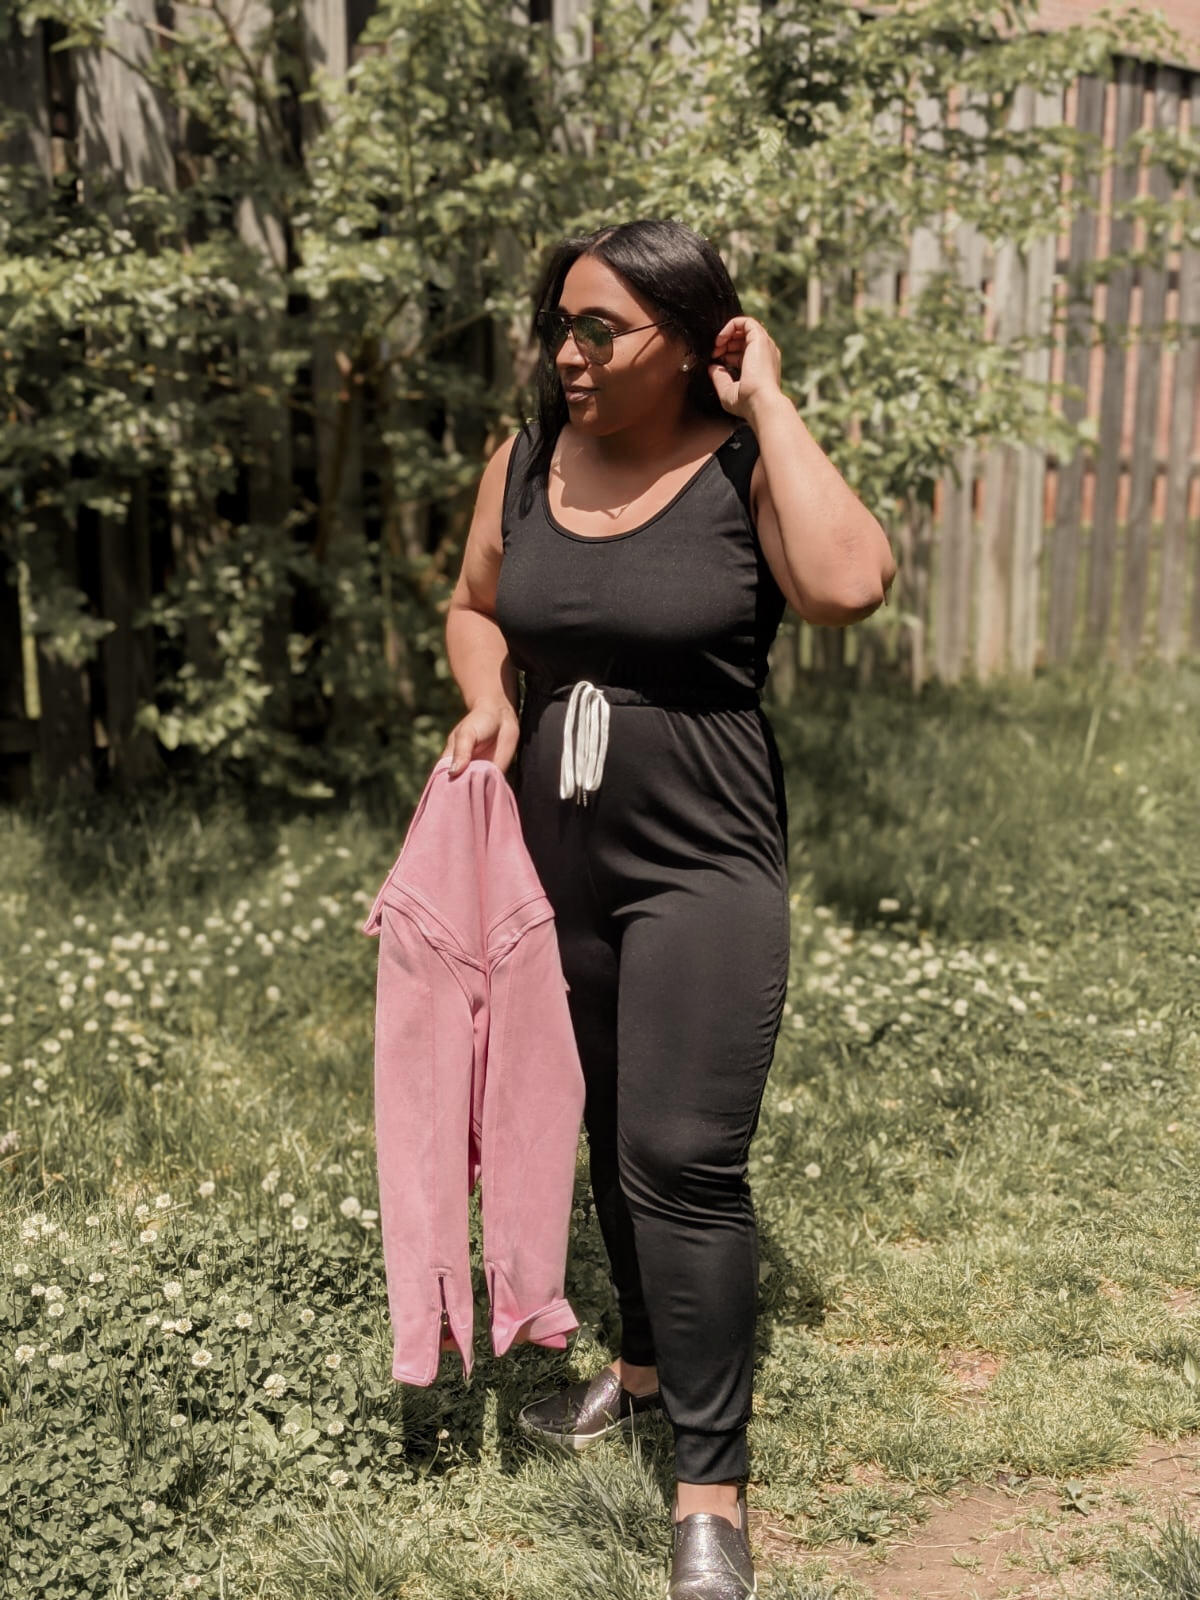 shein, shein reviews, how to style a jumpsuit, pattys kloset, jumpsuit outfit ideas